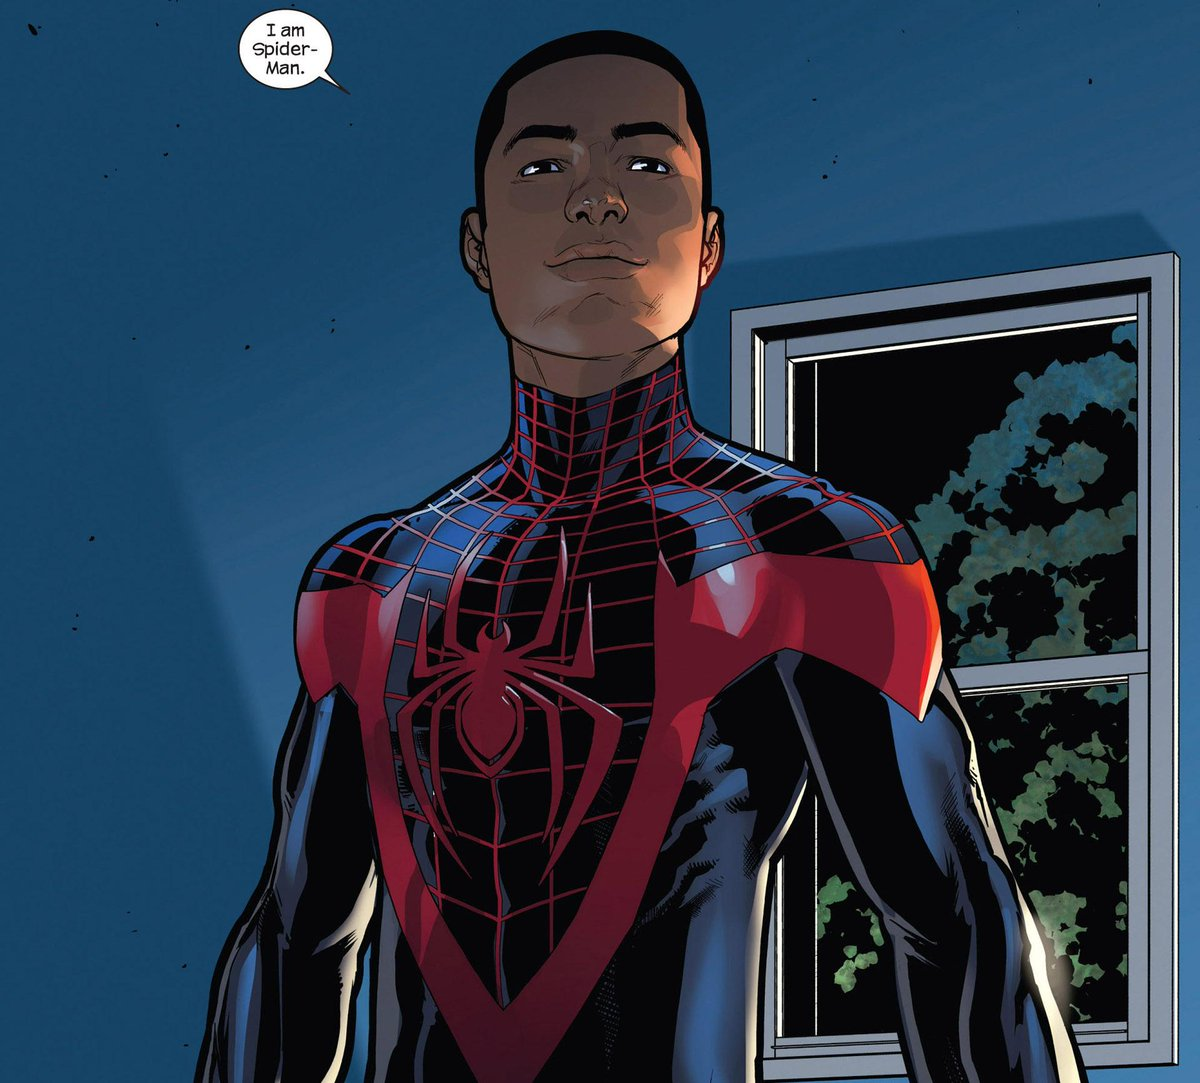 Fans want the new Spider-Man to be a Black, Hispanic teen